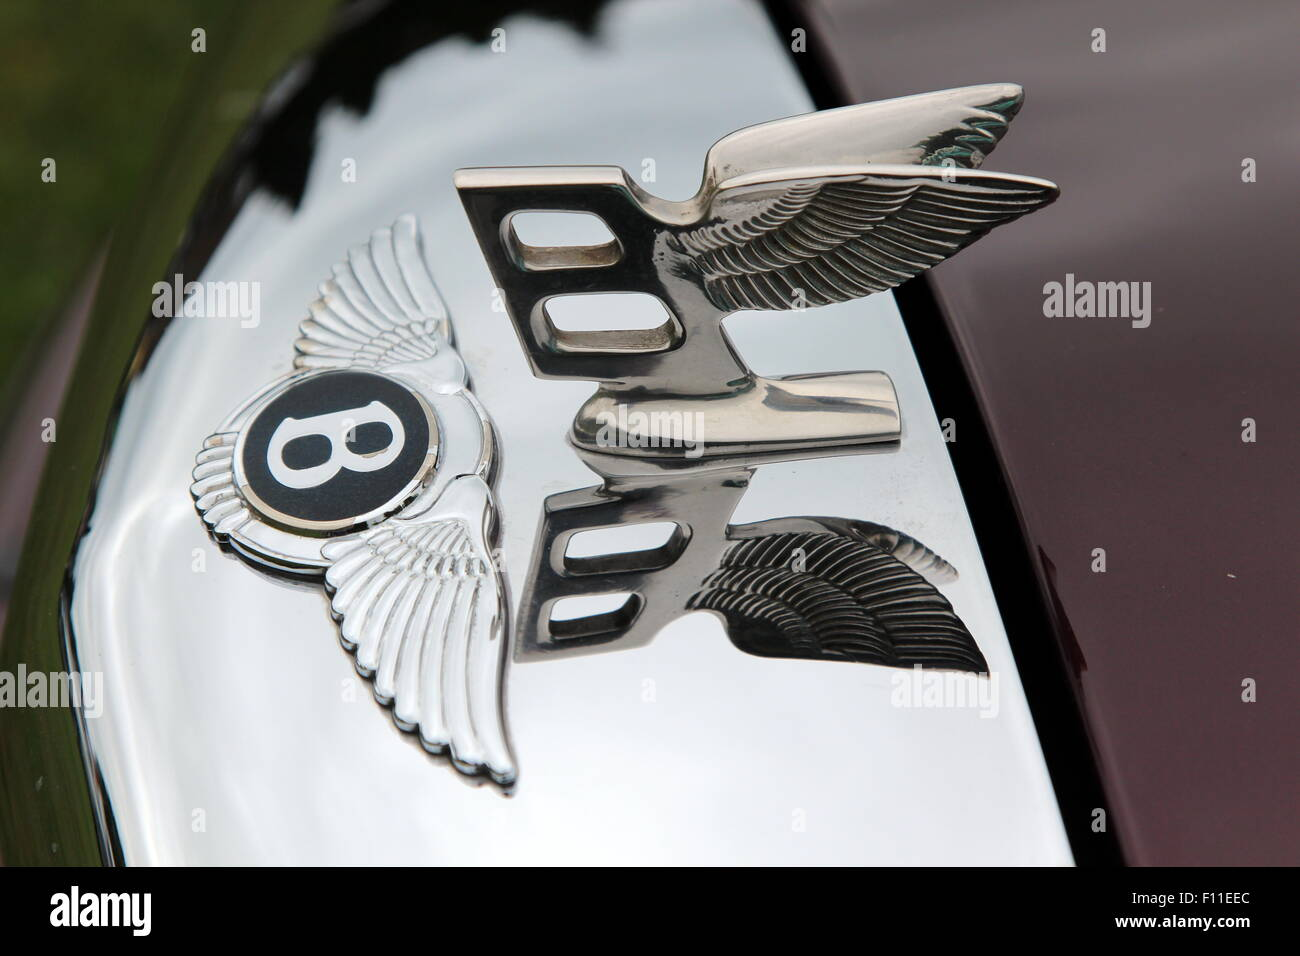 Bently stock photos bently stock images alamy winged bently hood ornament stock image voltagebd Image collections